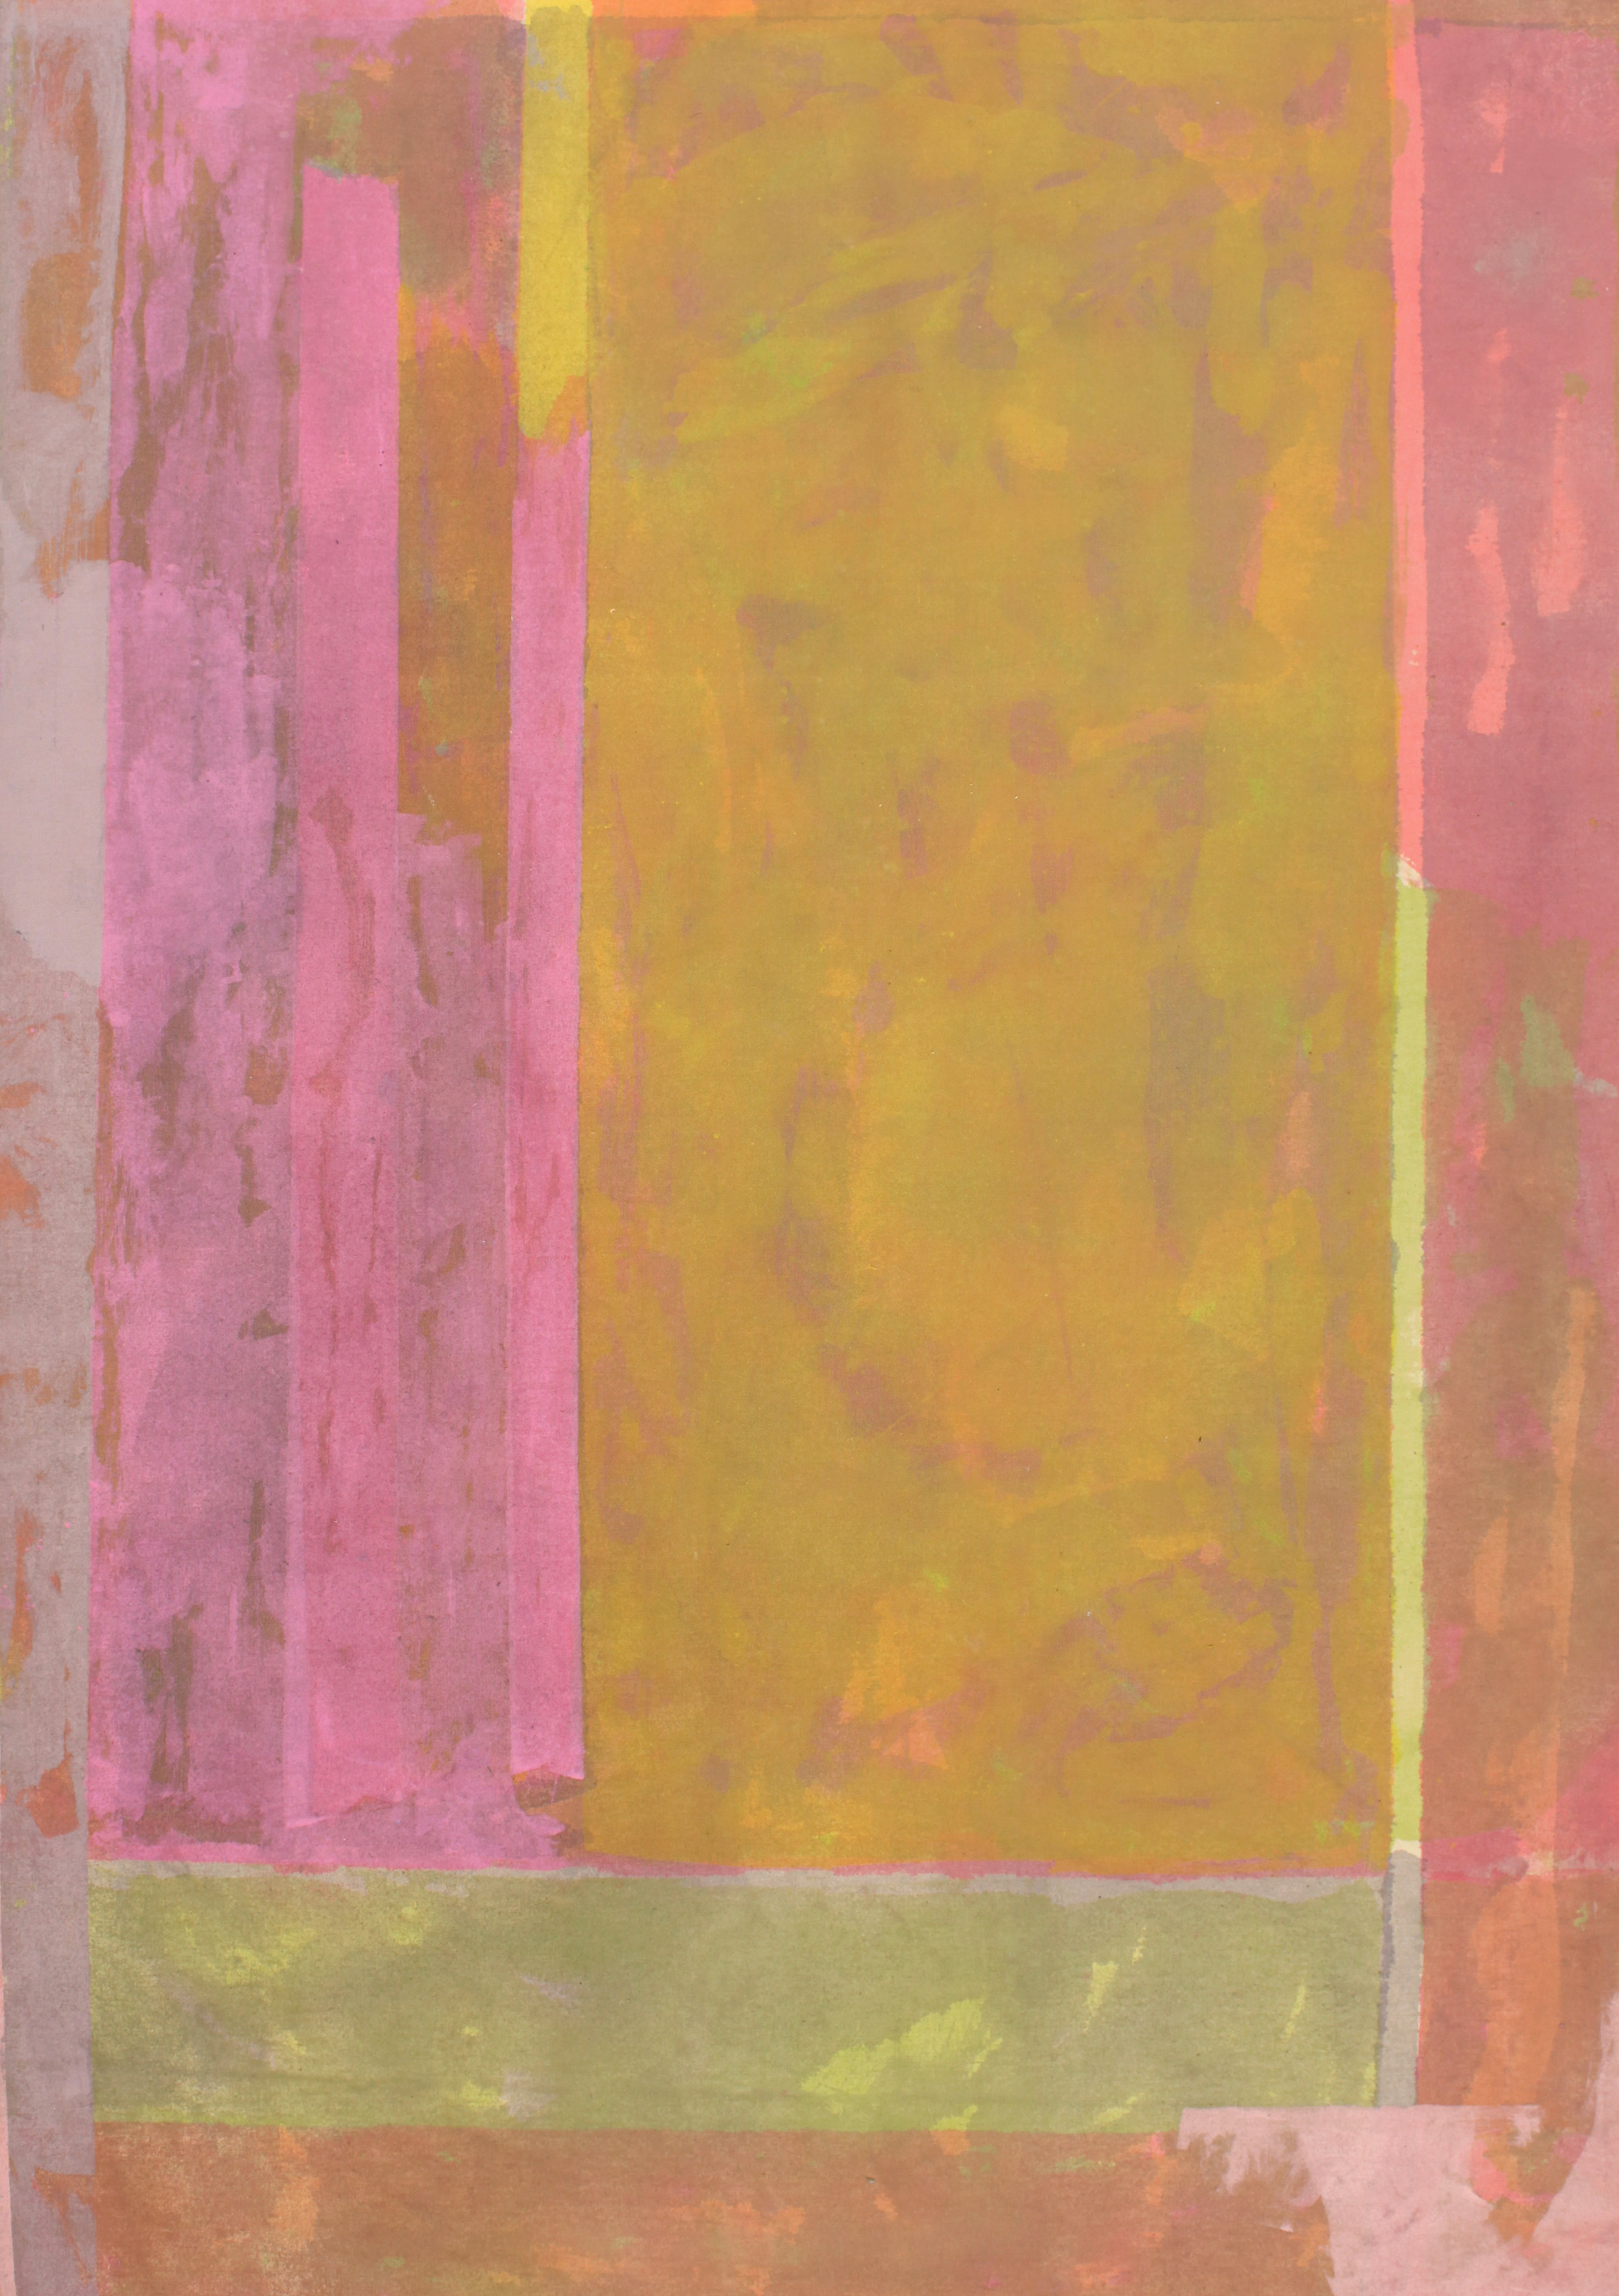 1974_UntitledNo7409_acryliconcanvas_67x47_PNF129.jpg